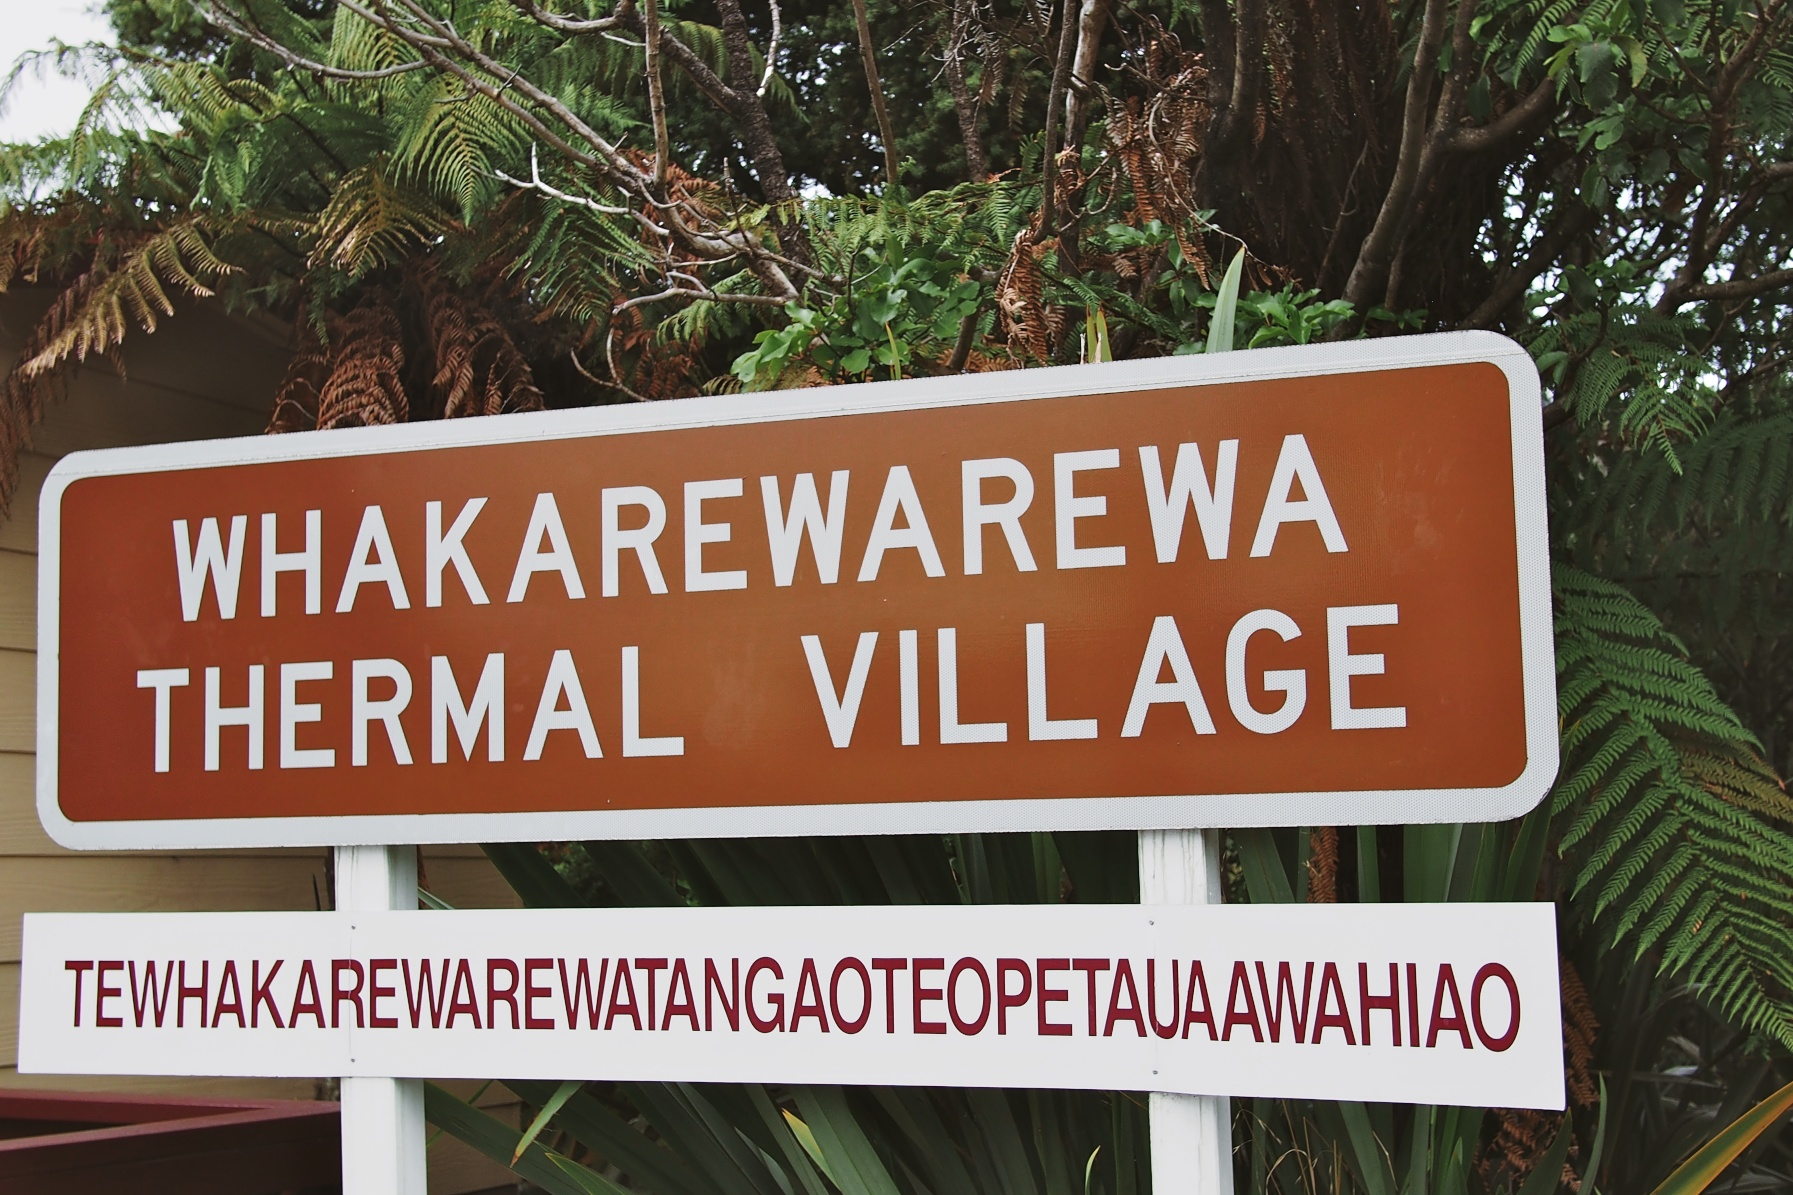 That's the full name of the town at the bottom